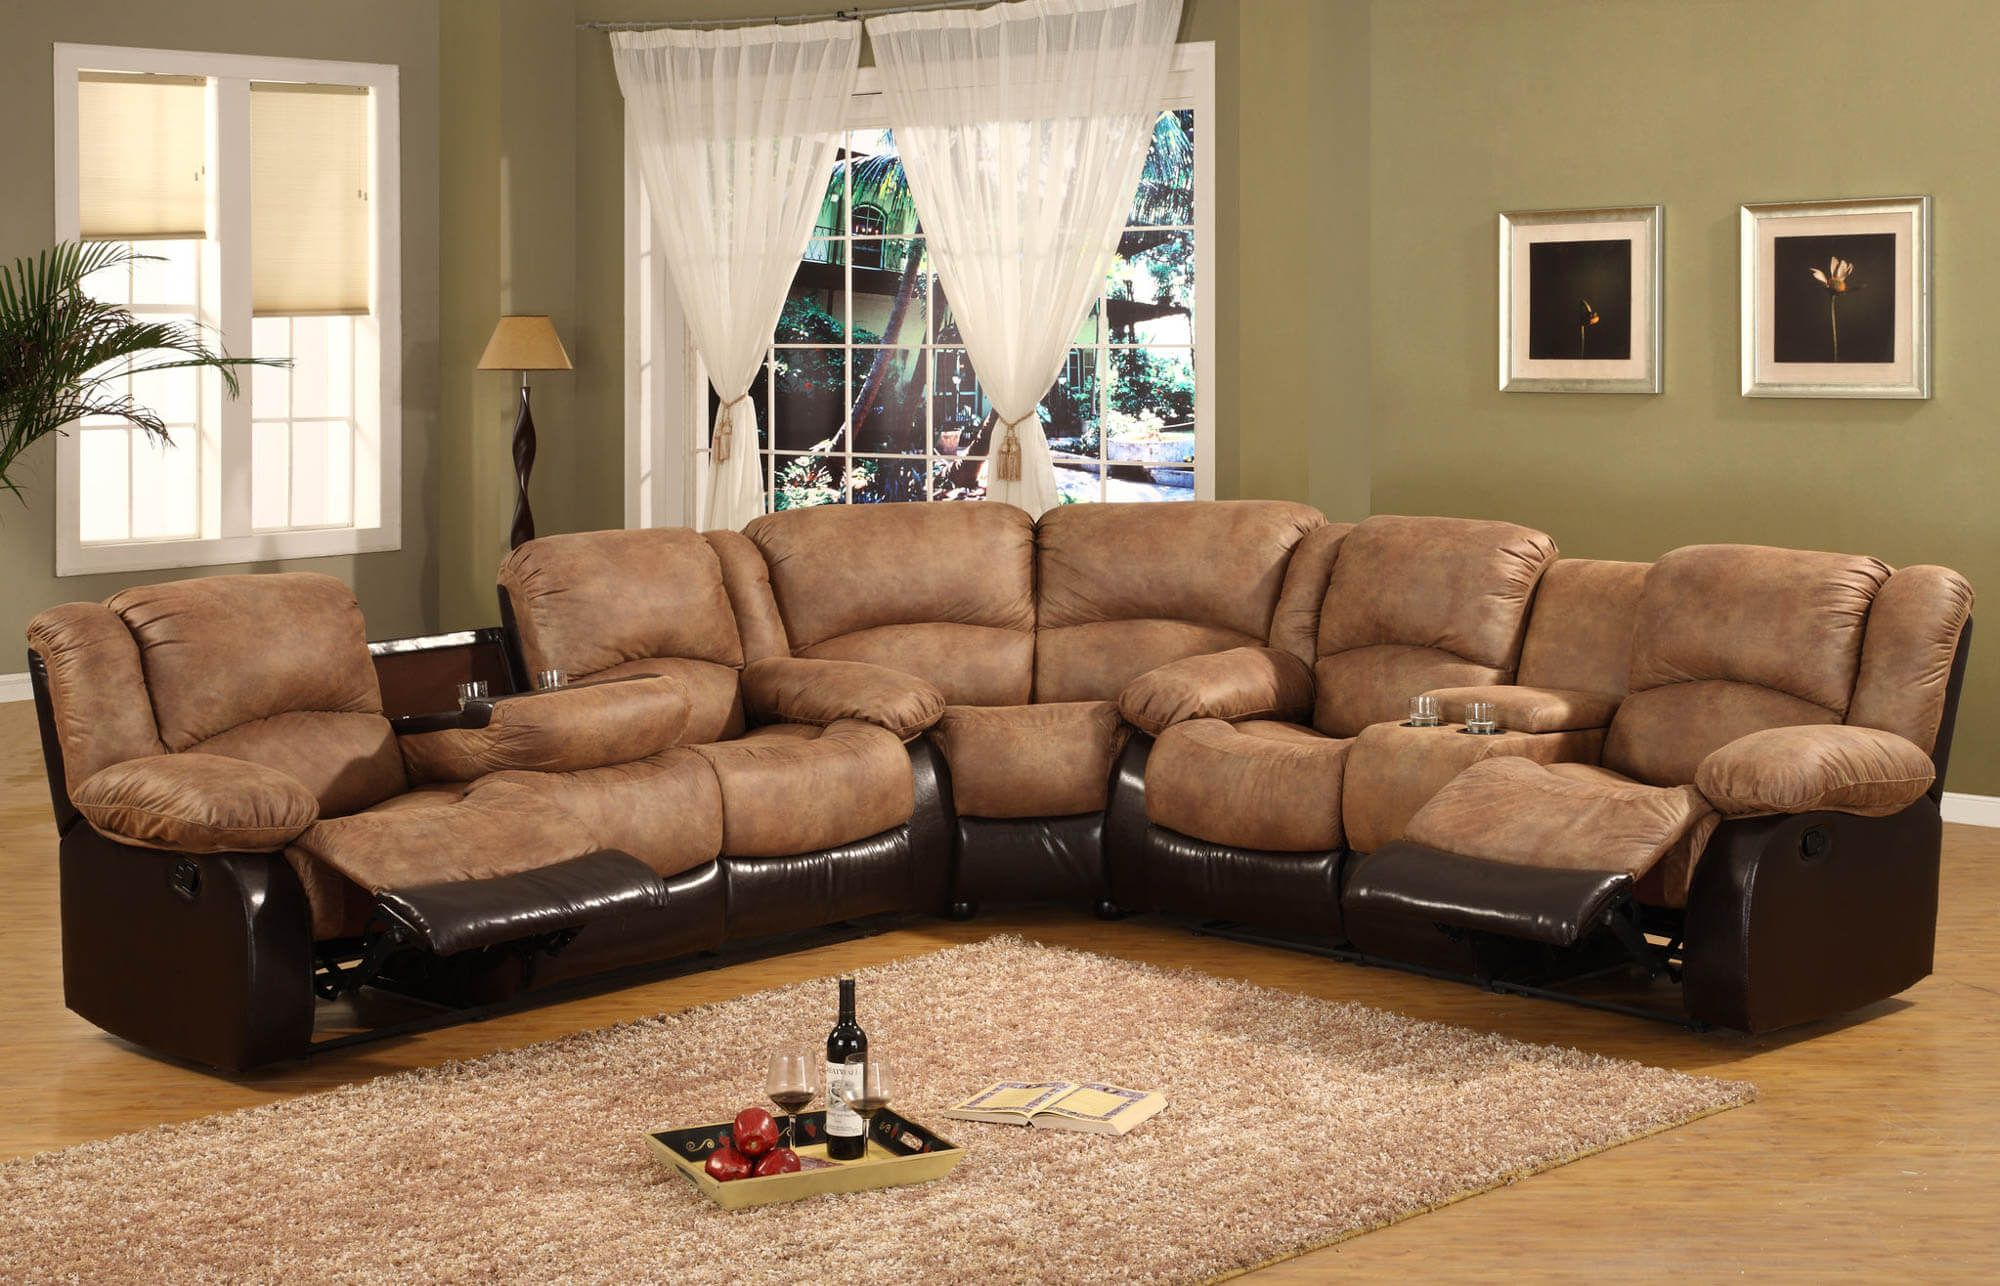 43 Awesome Comfy And Small Apartment Size Recliner Ideas In 2020 Living Room Furniture Recliner Sectional Sofa With Recliner Large Sectional Sofa